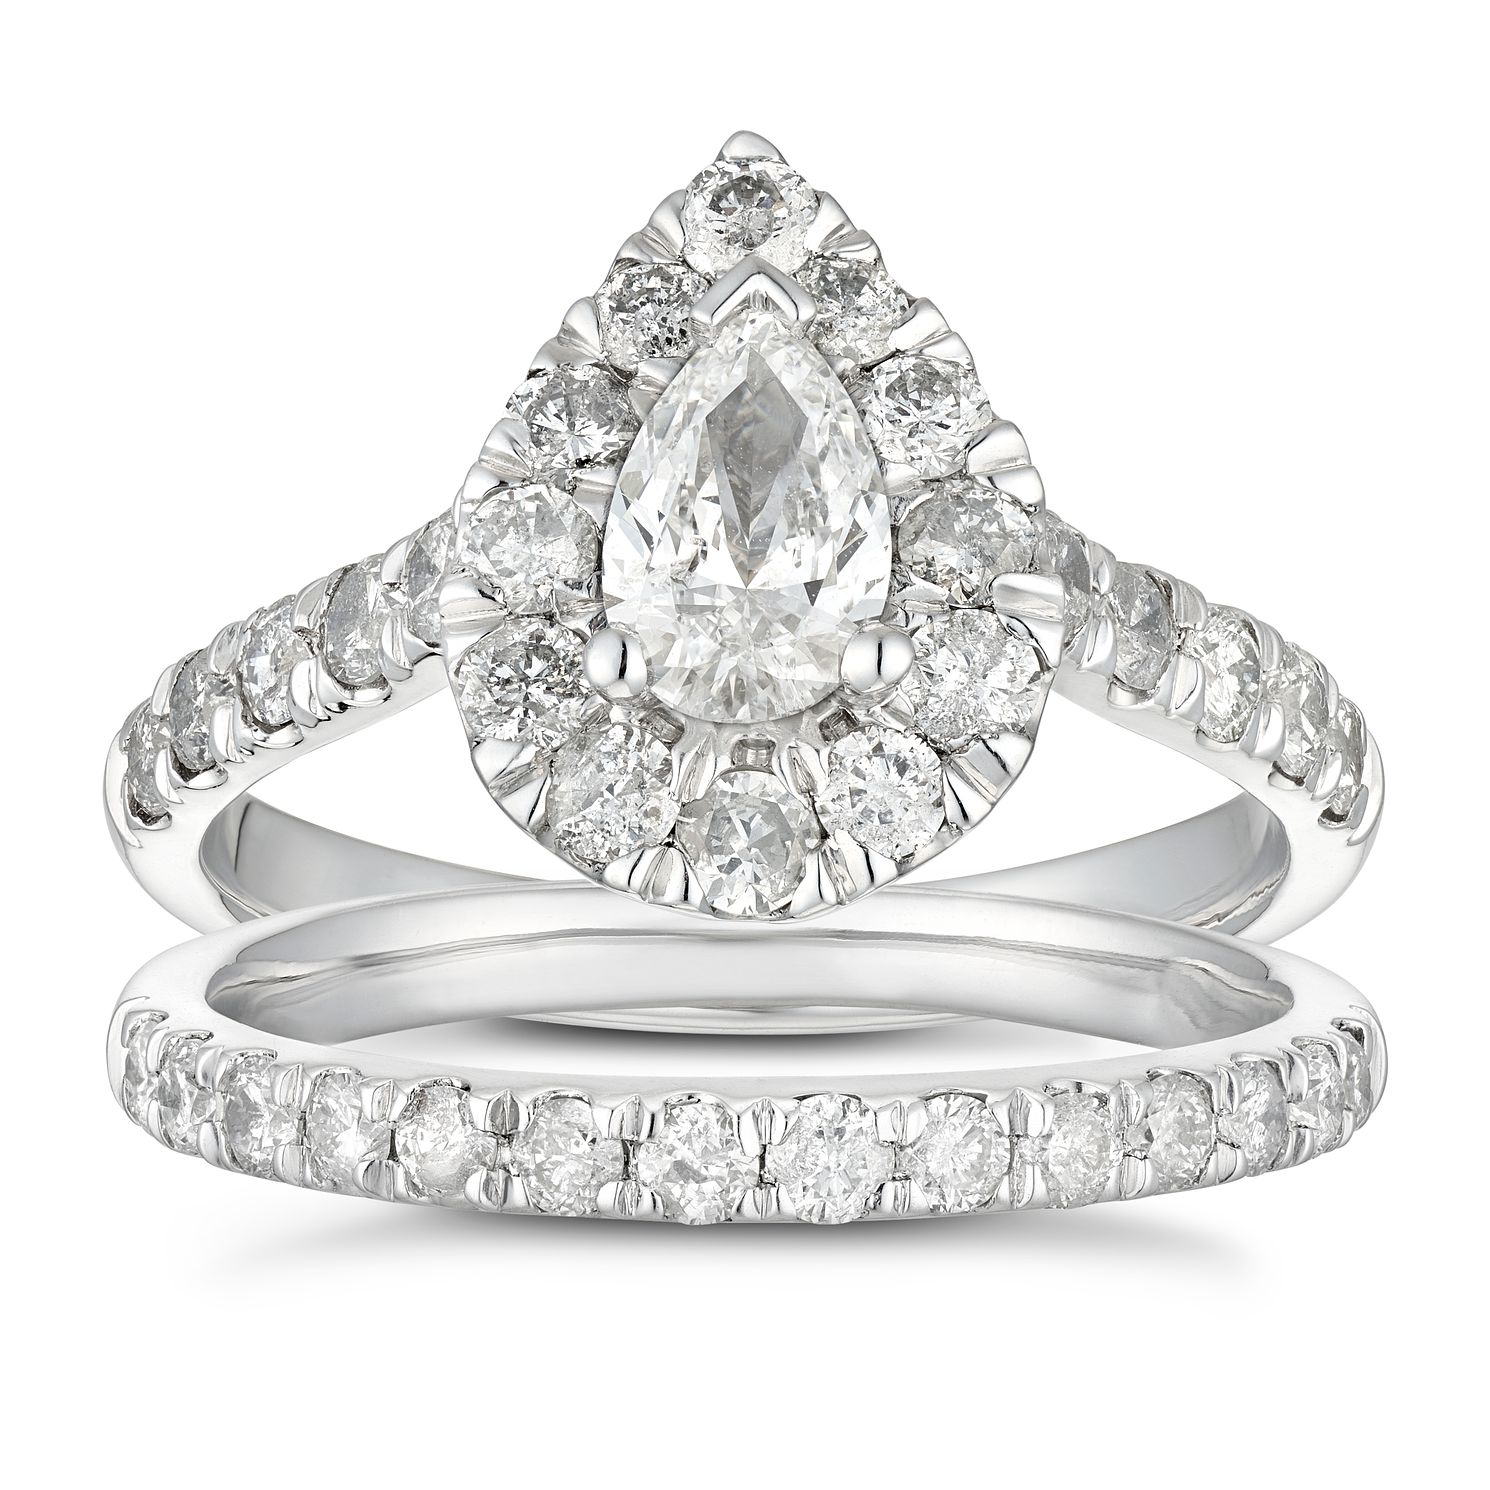 Platinum 1.5ct Total Diamond Pear Halo Bridal Set - Product number 5708176